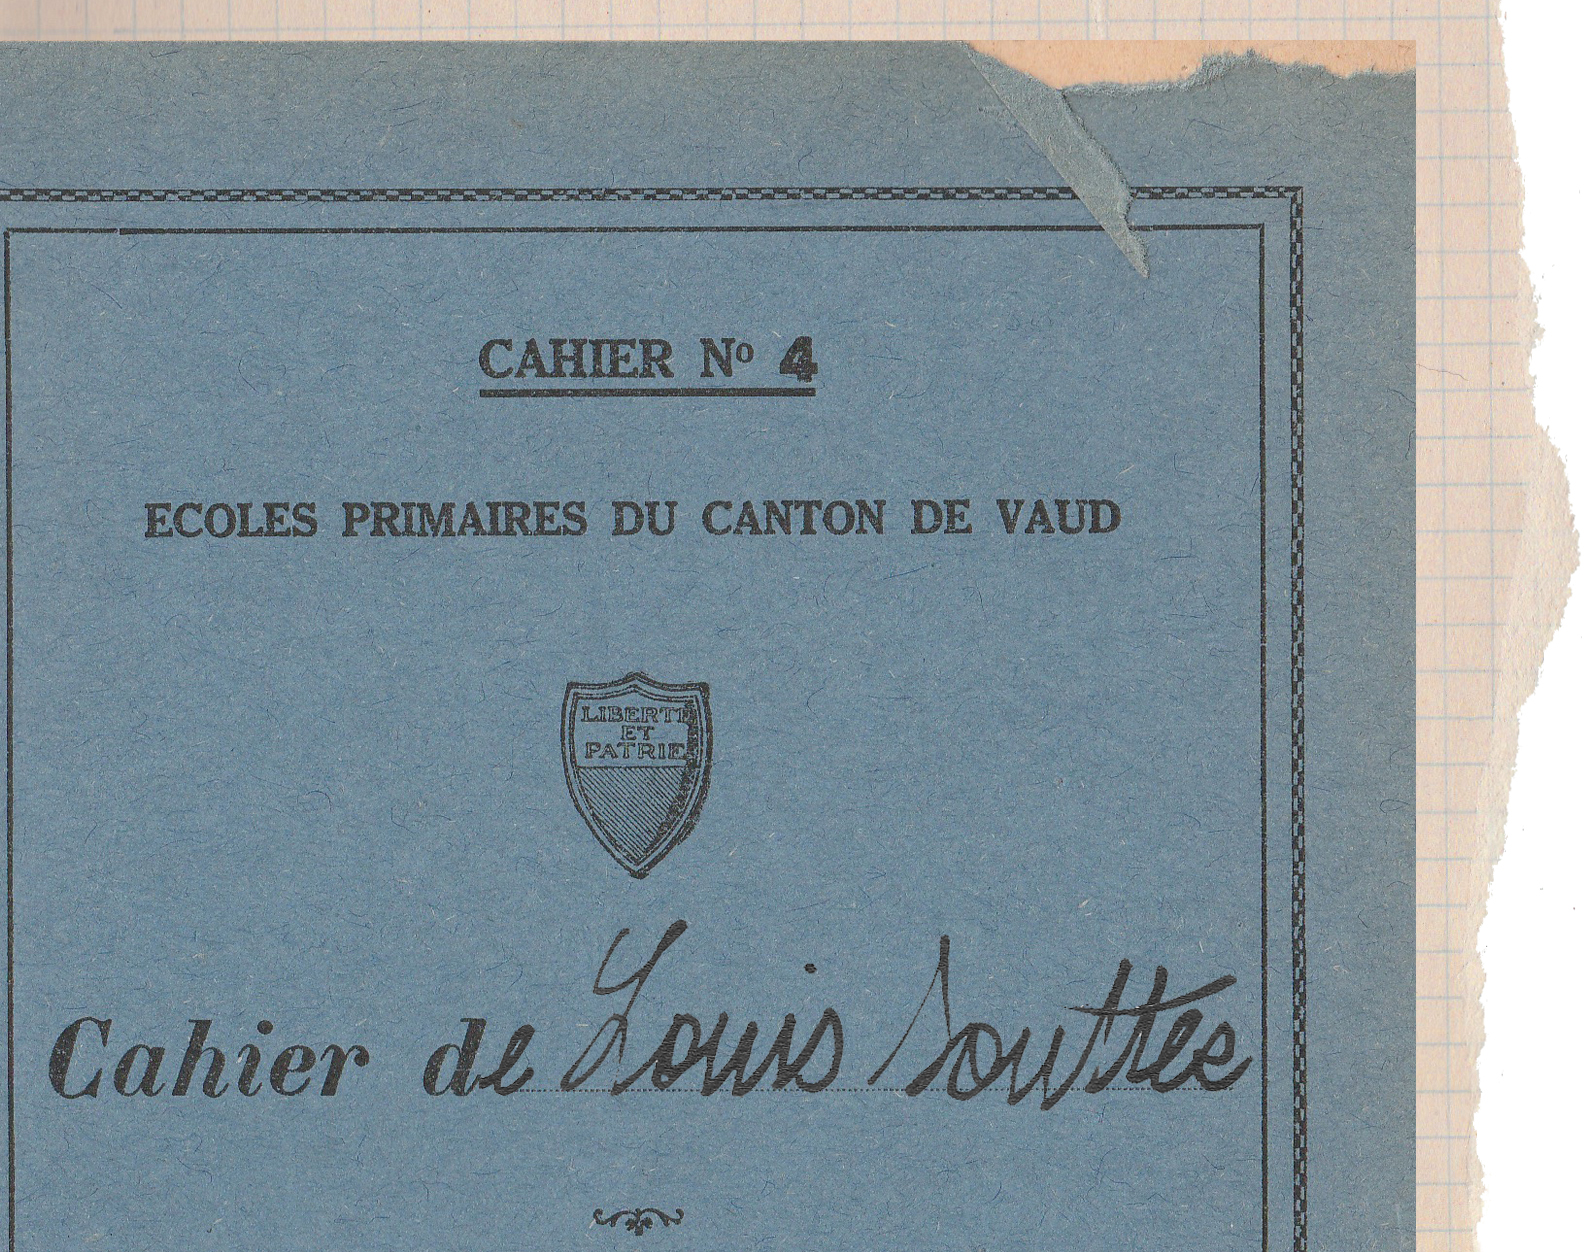 RECONSTITUTION VIRTUELLE DES CAHIERS DEMANTELES DE LOUIS SOUTTER